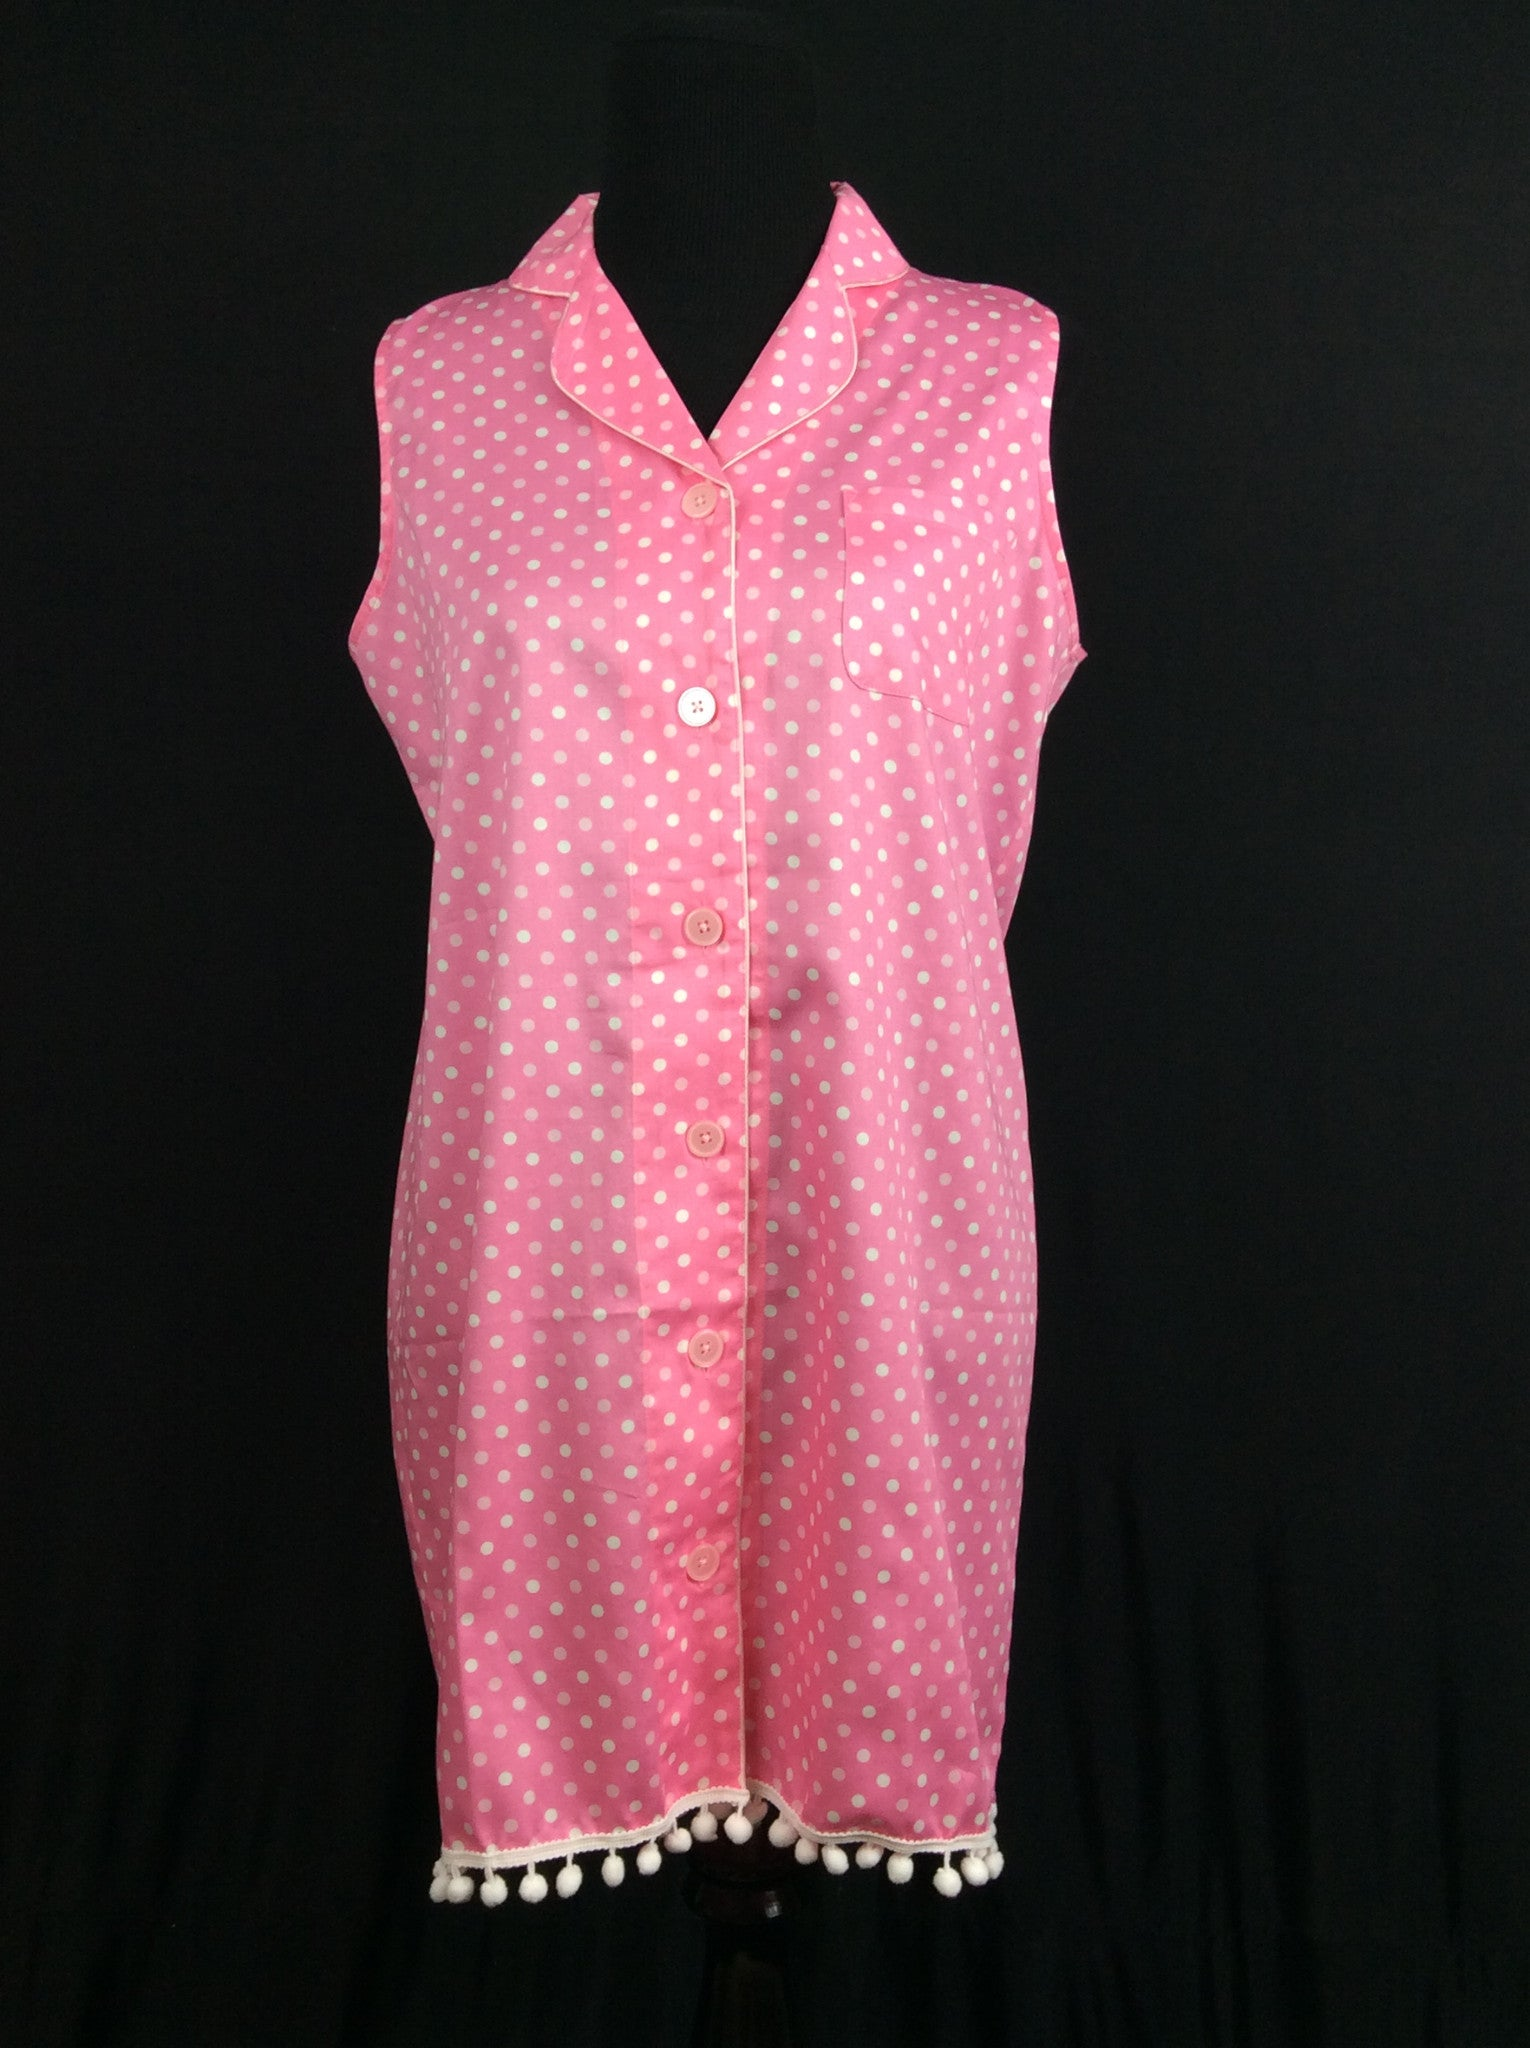 Patty 1960's Nightshirt in Paradise Pink Polka Dot